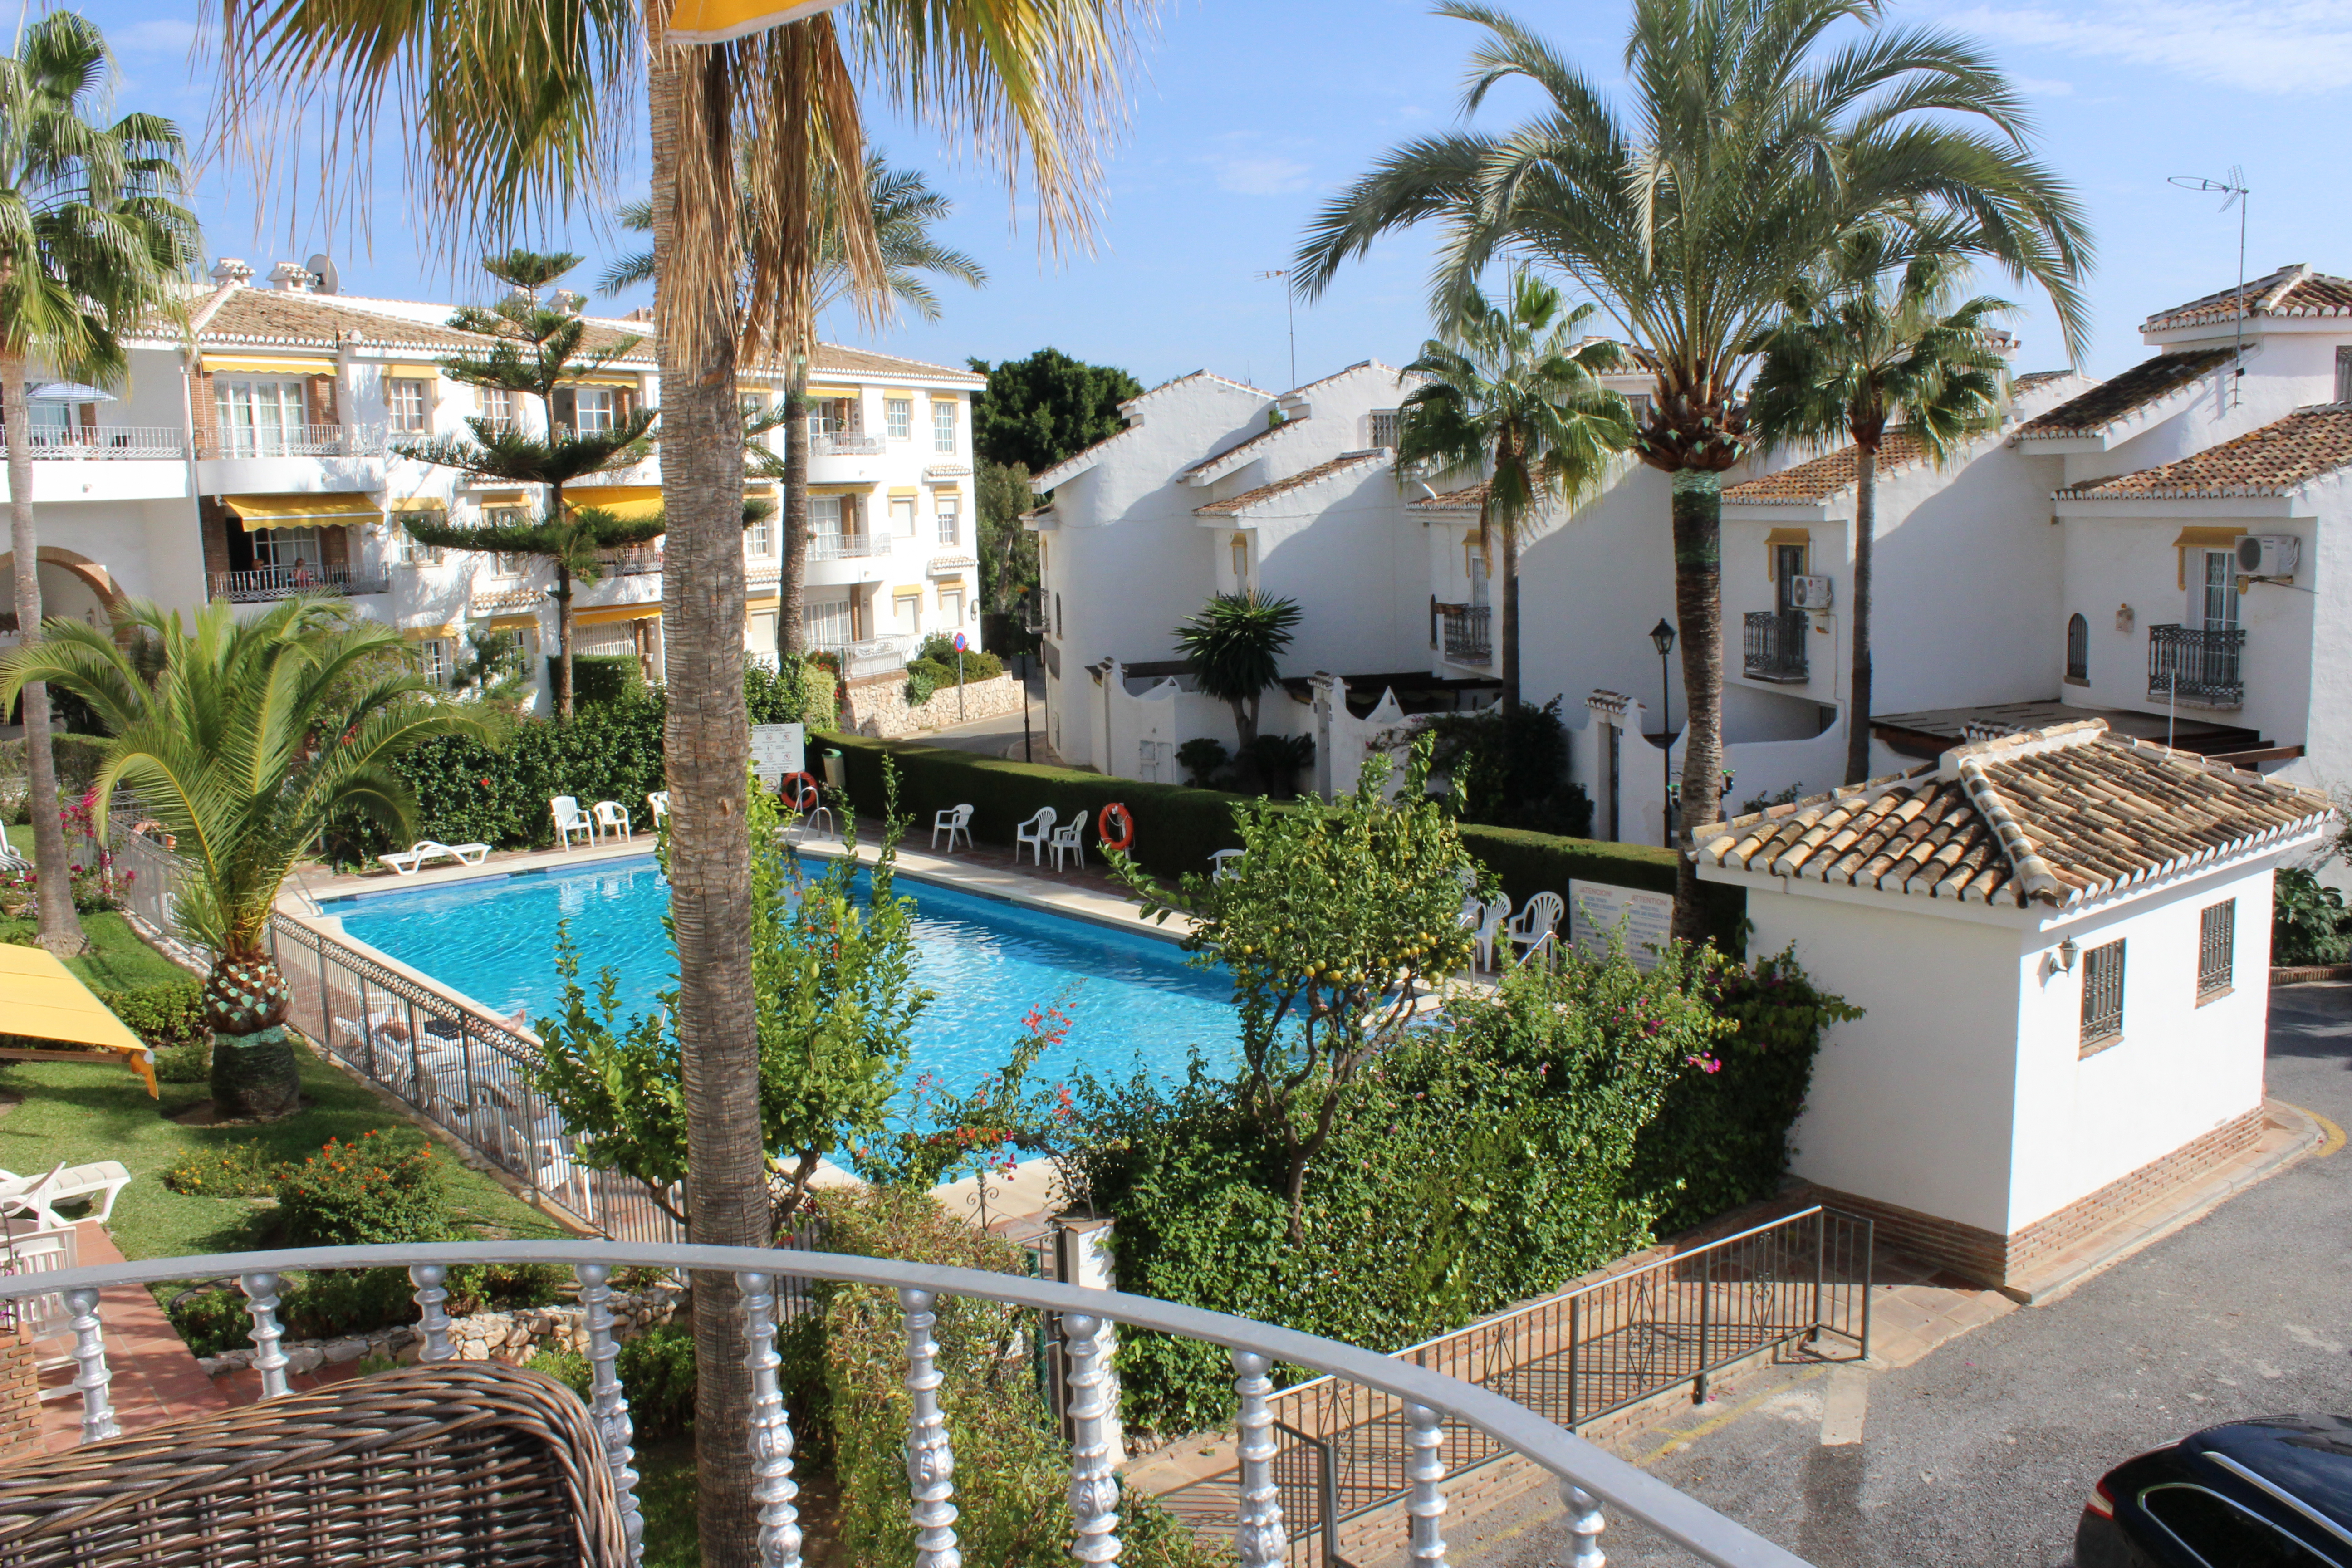 MP 2-2 Mijas Playa Club Apartment